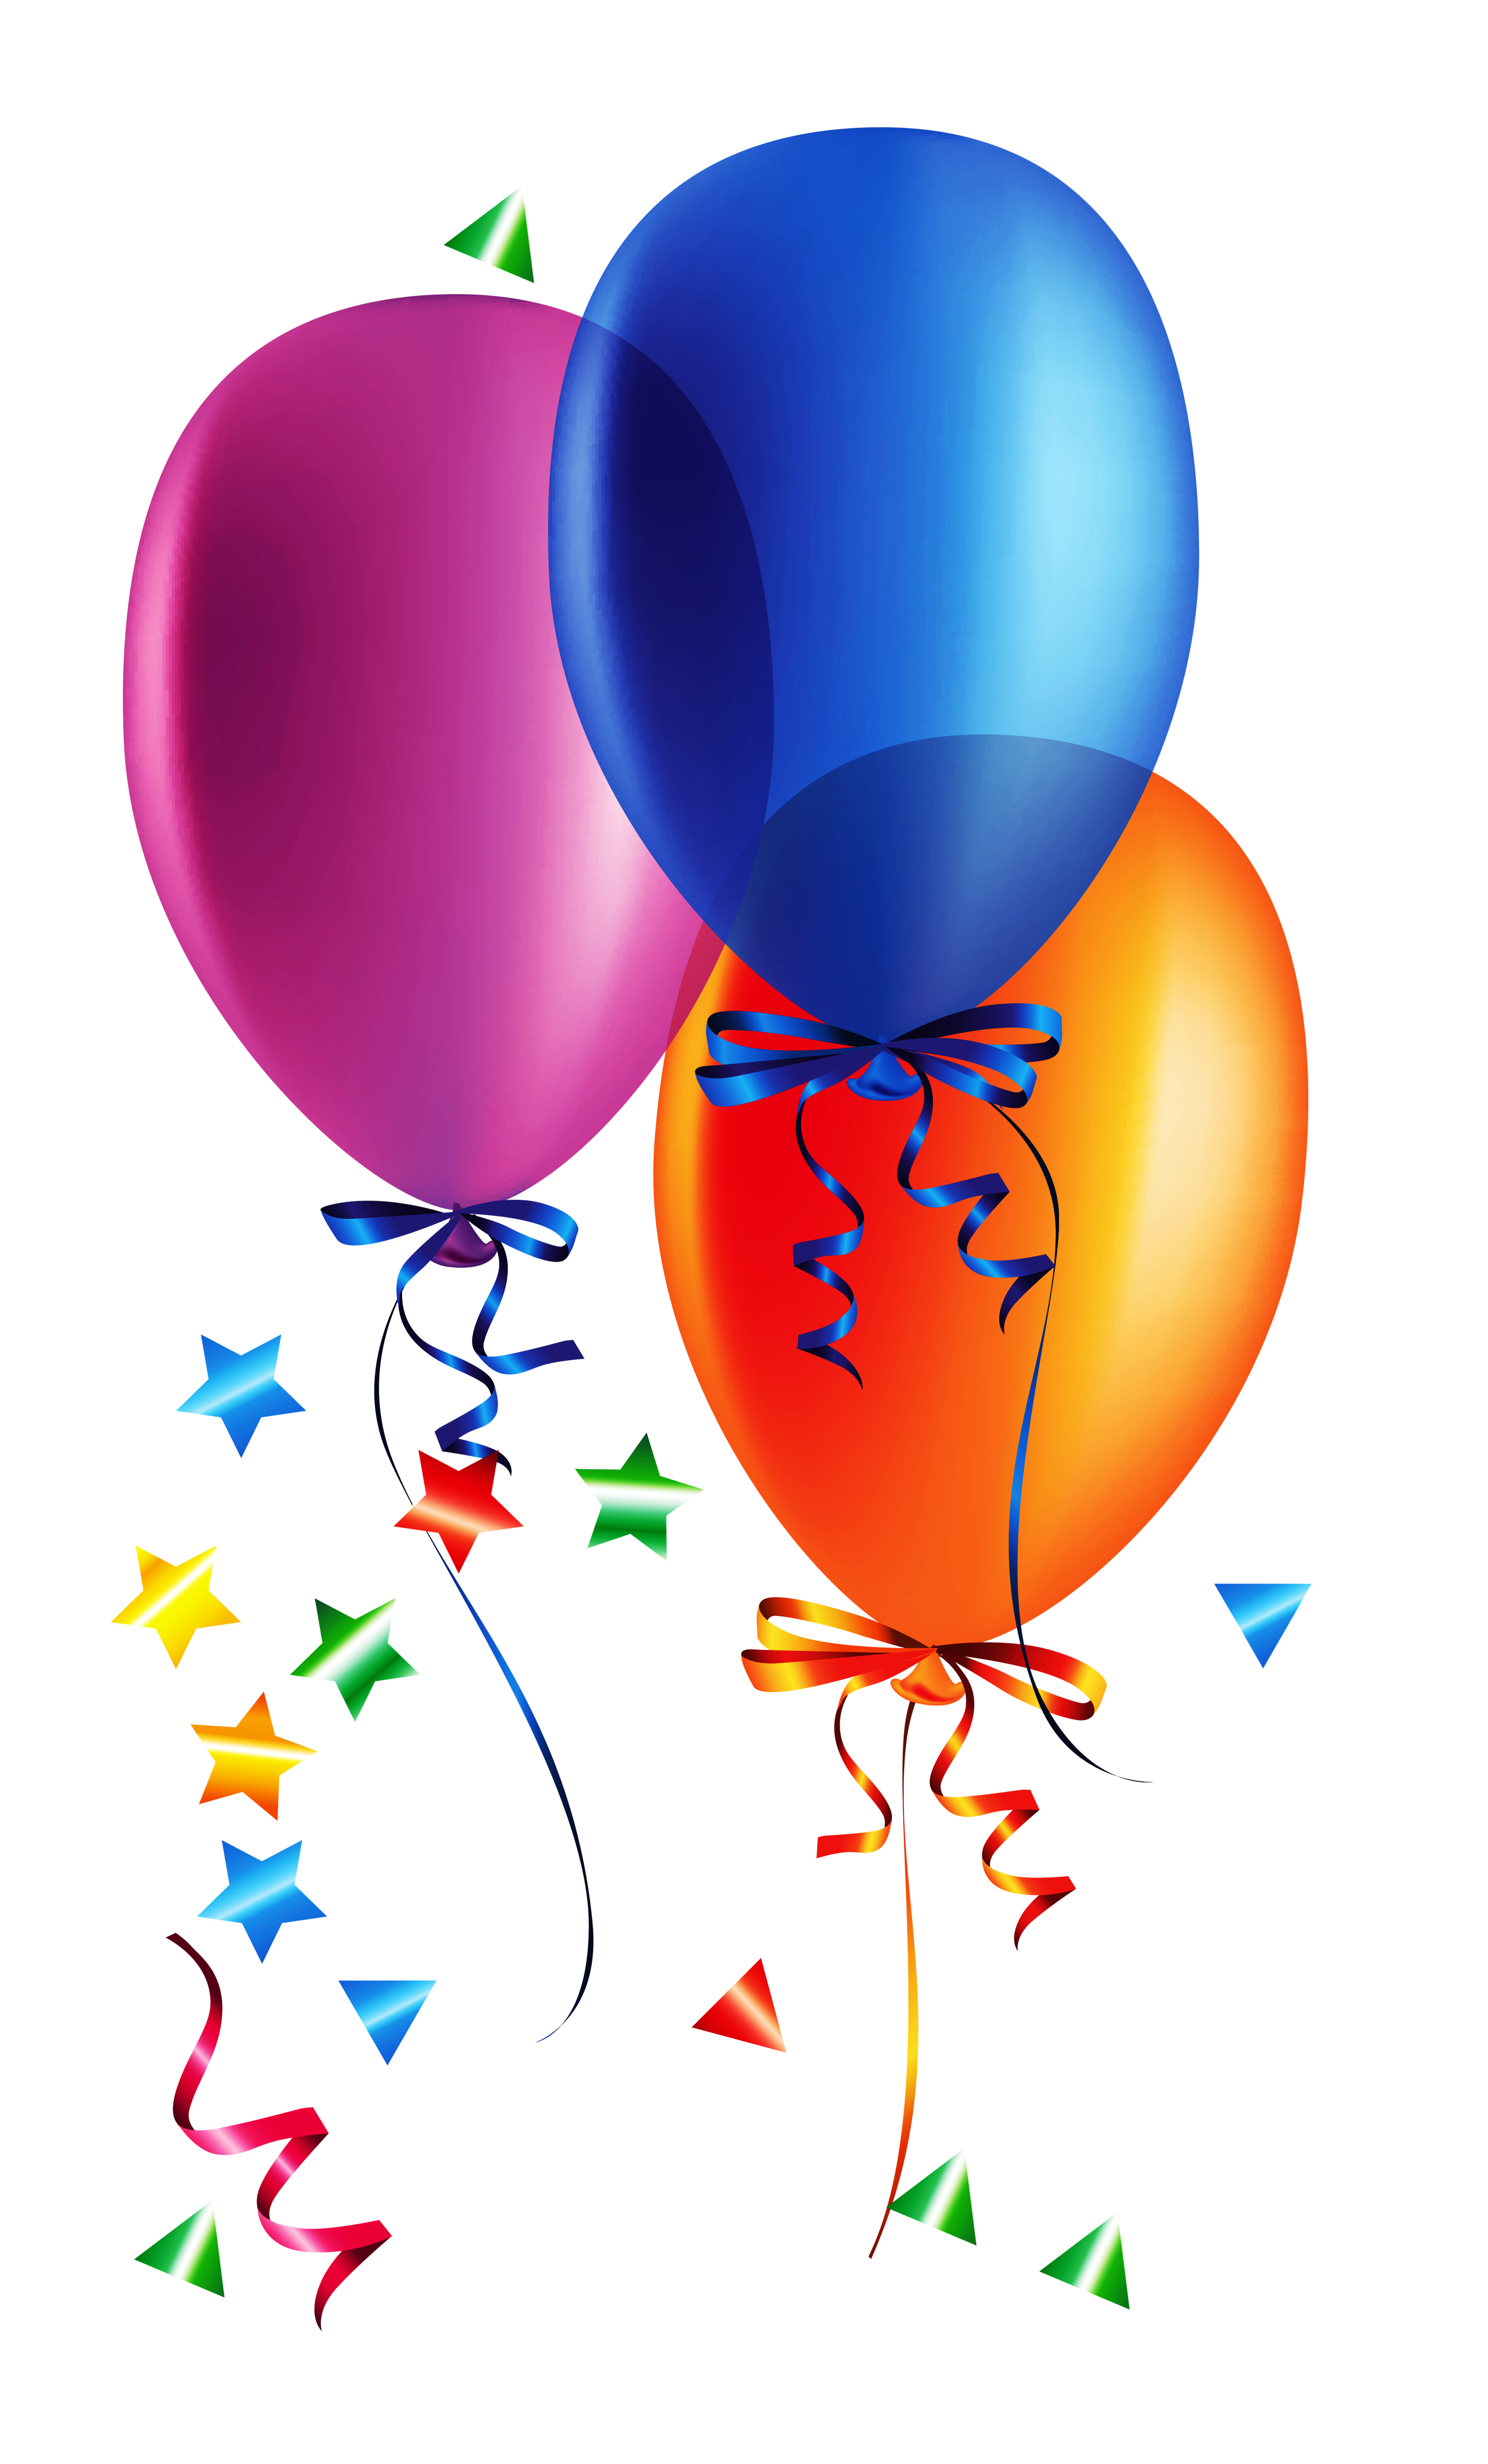 Balloon png transparent background. Balloons with confetti clipart